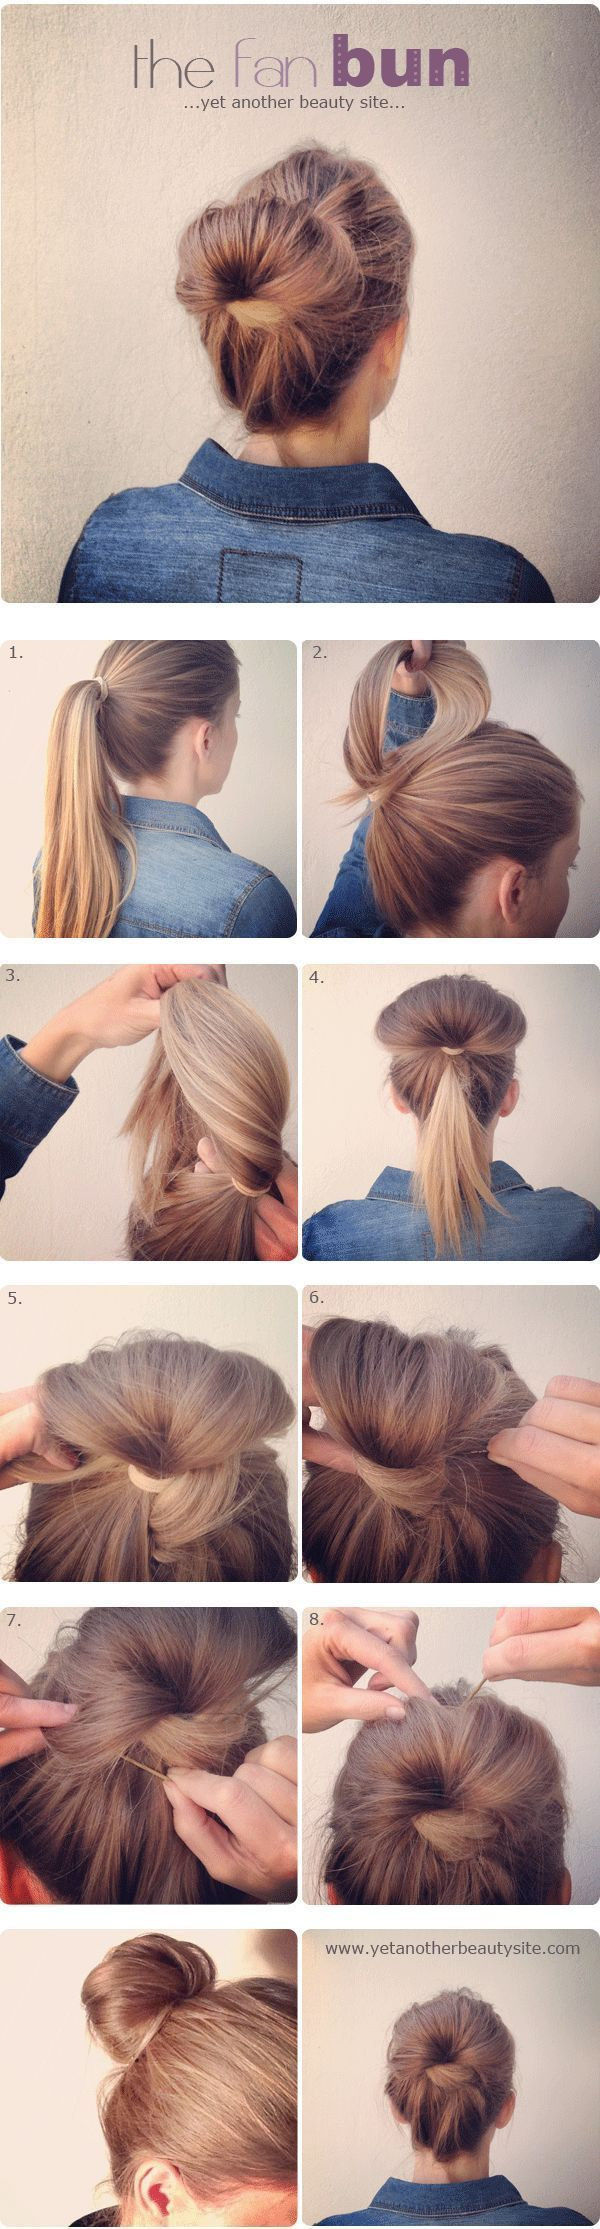 best beauty hair styles cuts images on pinterest hair